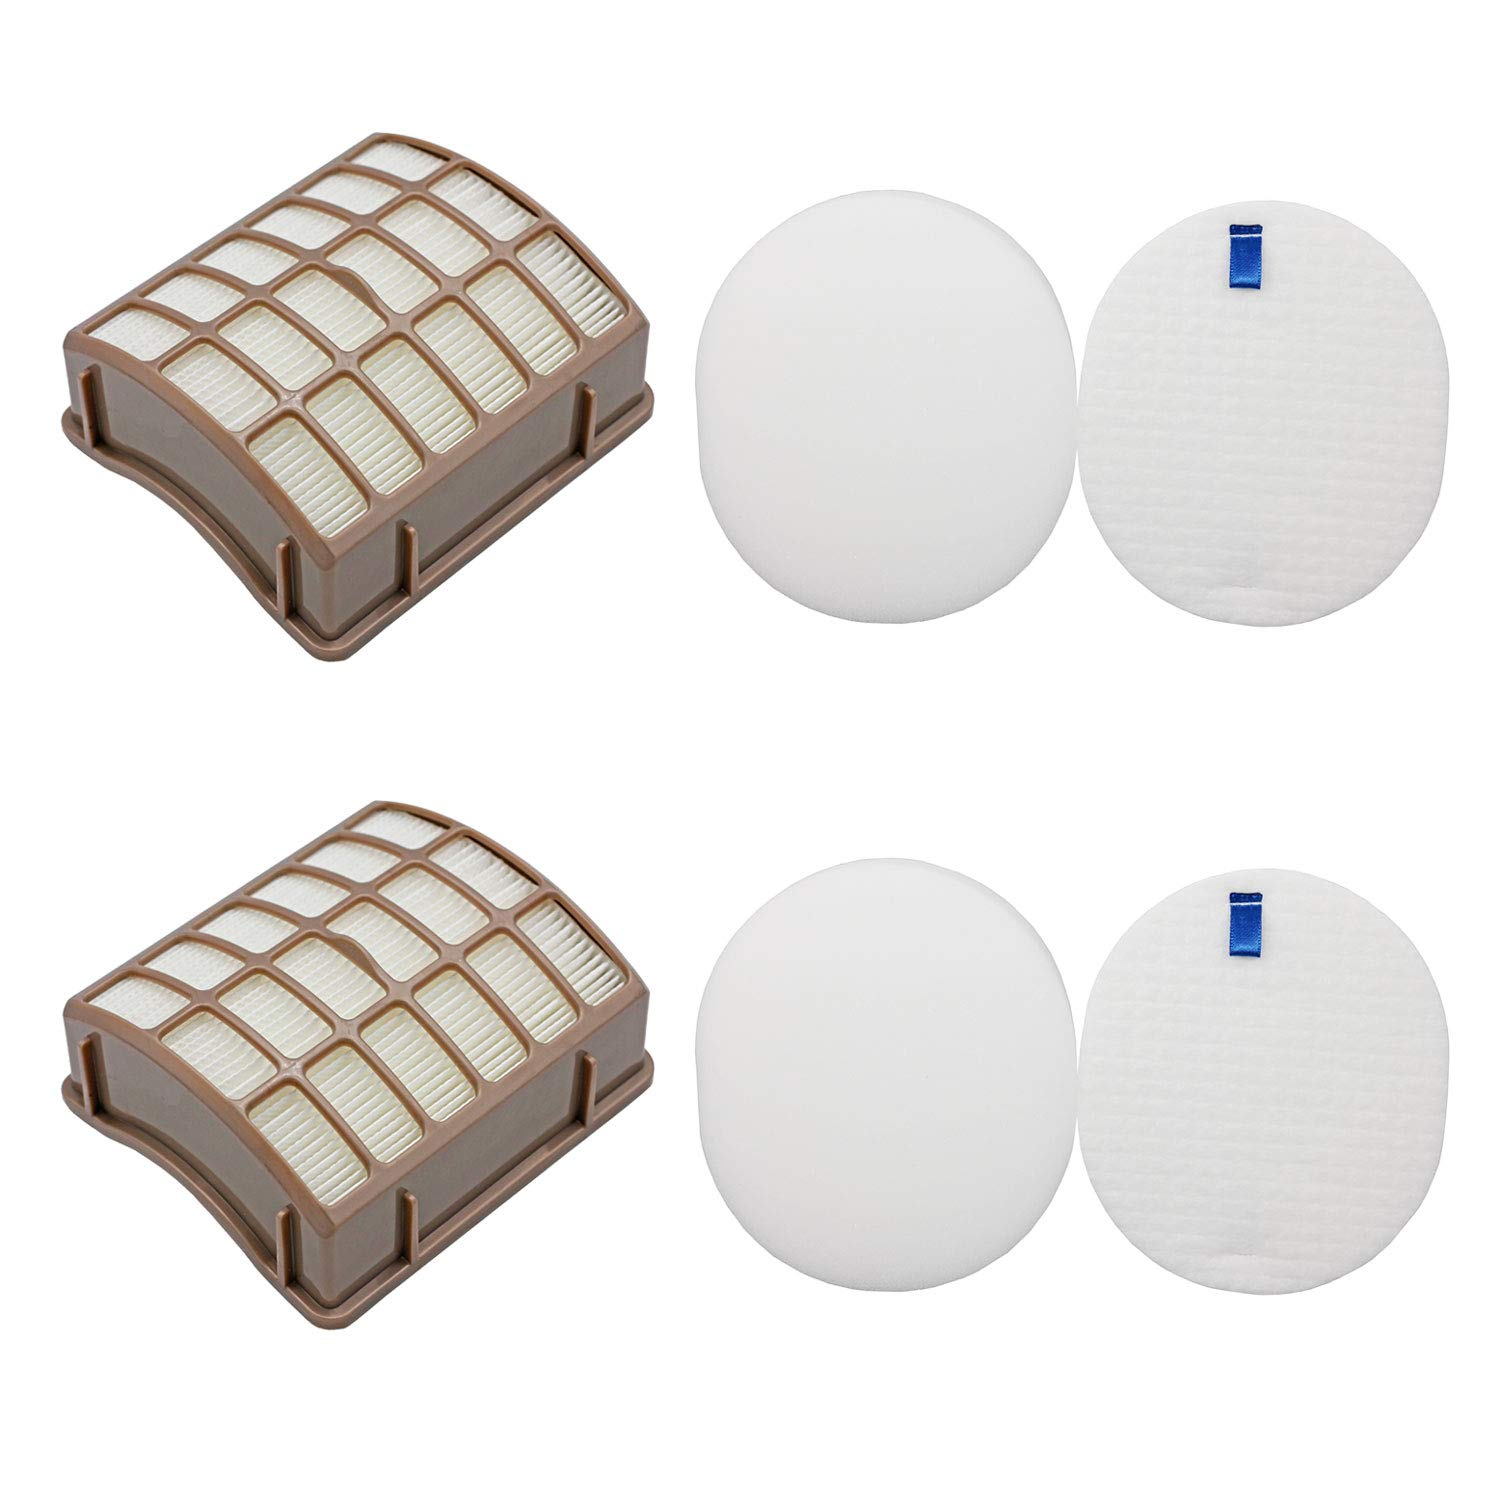 Lemige Vacuum Filters Replacement Set for Shark Navigator Rotator Professional NV70 NV71 NV80 NV90 NV95 UV420, Compare to Part XHF80&XFF80, 2 HEPA Filters +2 Foam Filters + 2 Felt Filters 61M1yO2dLvL